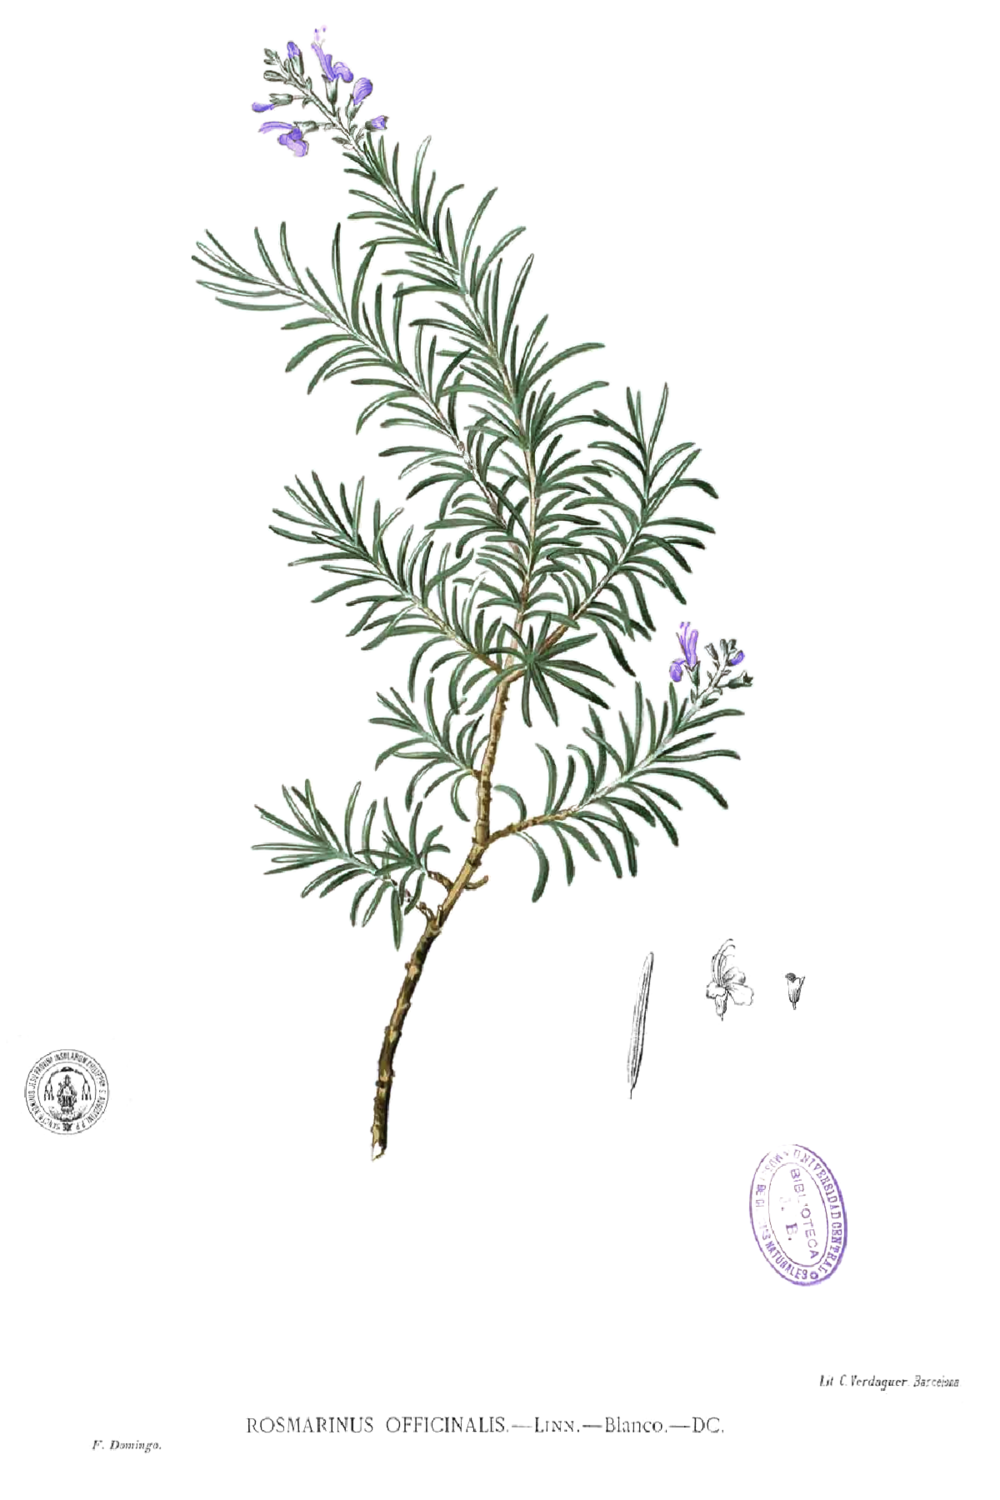 Rosmarinus officinalis, Flora de Filipinas 1880